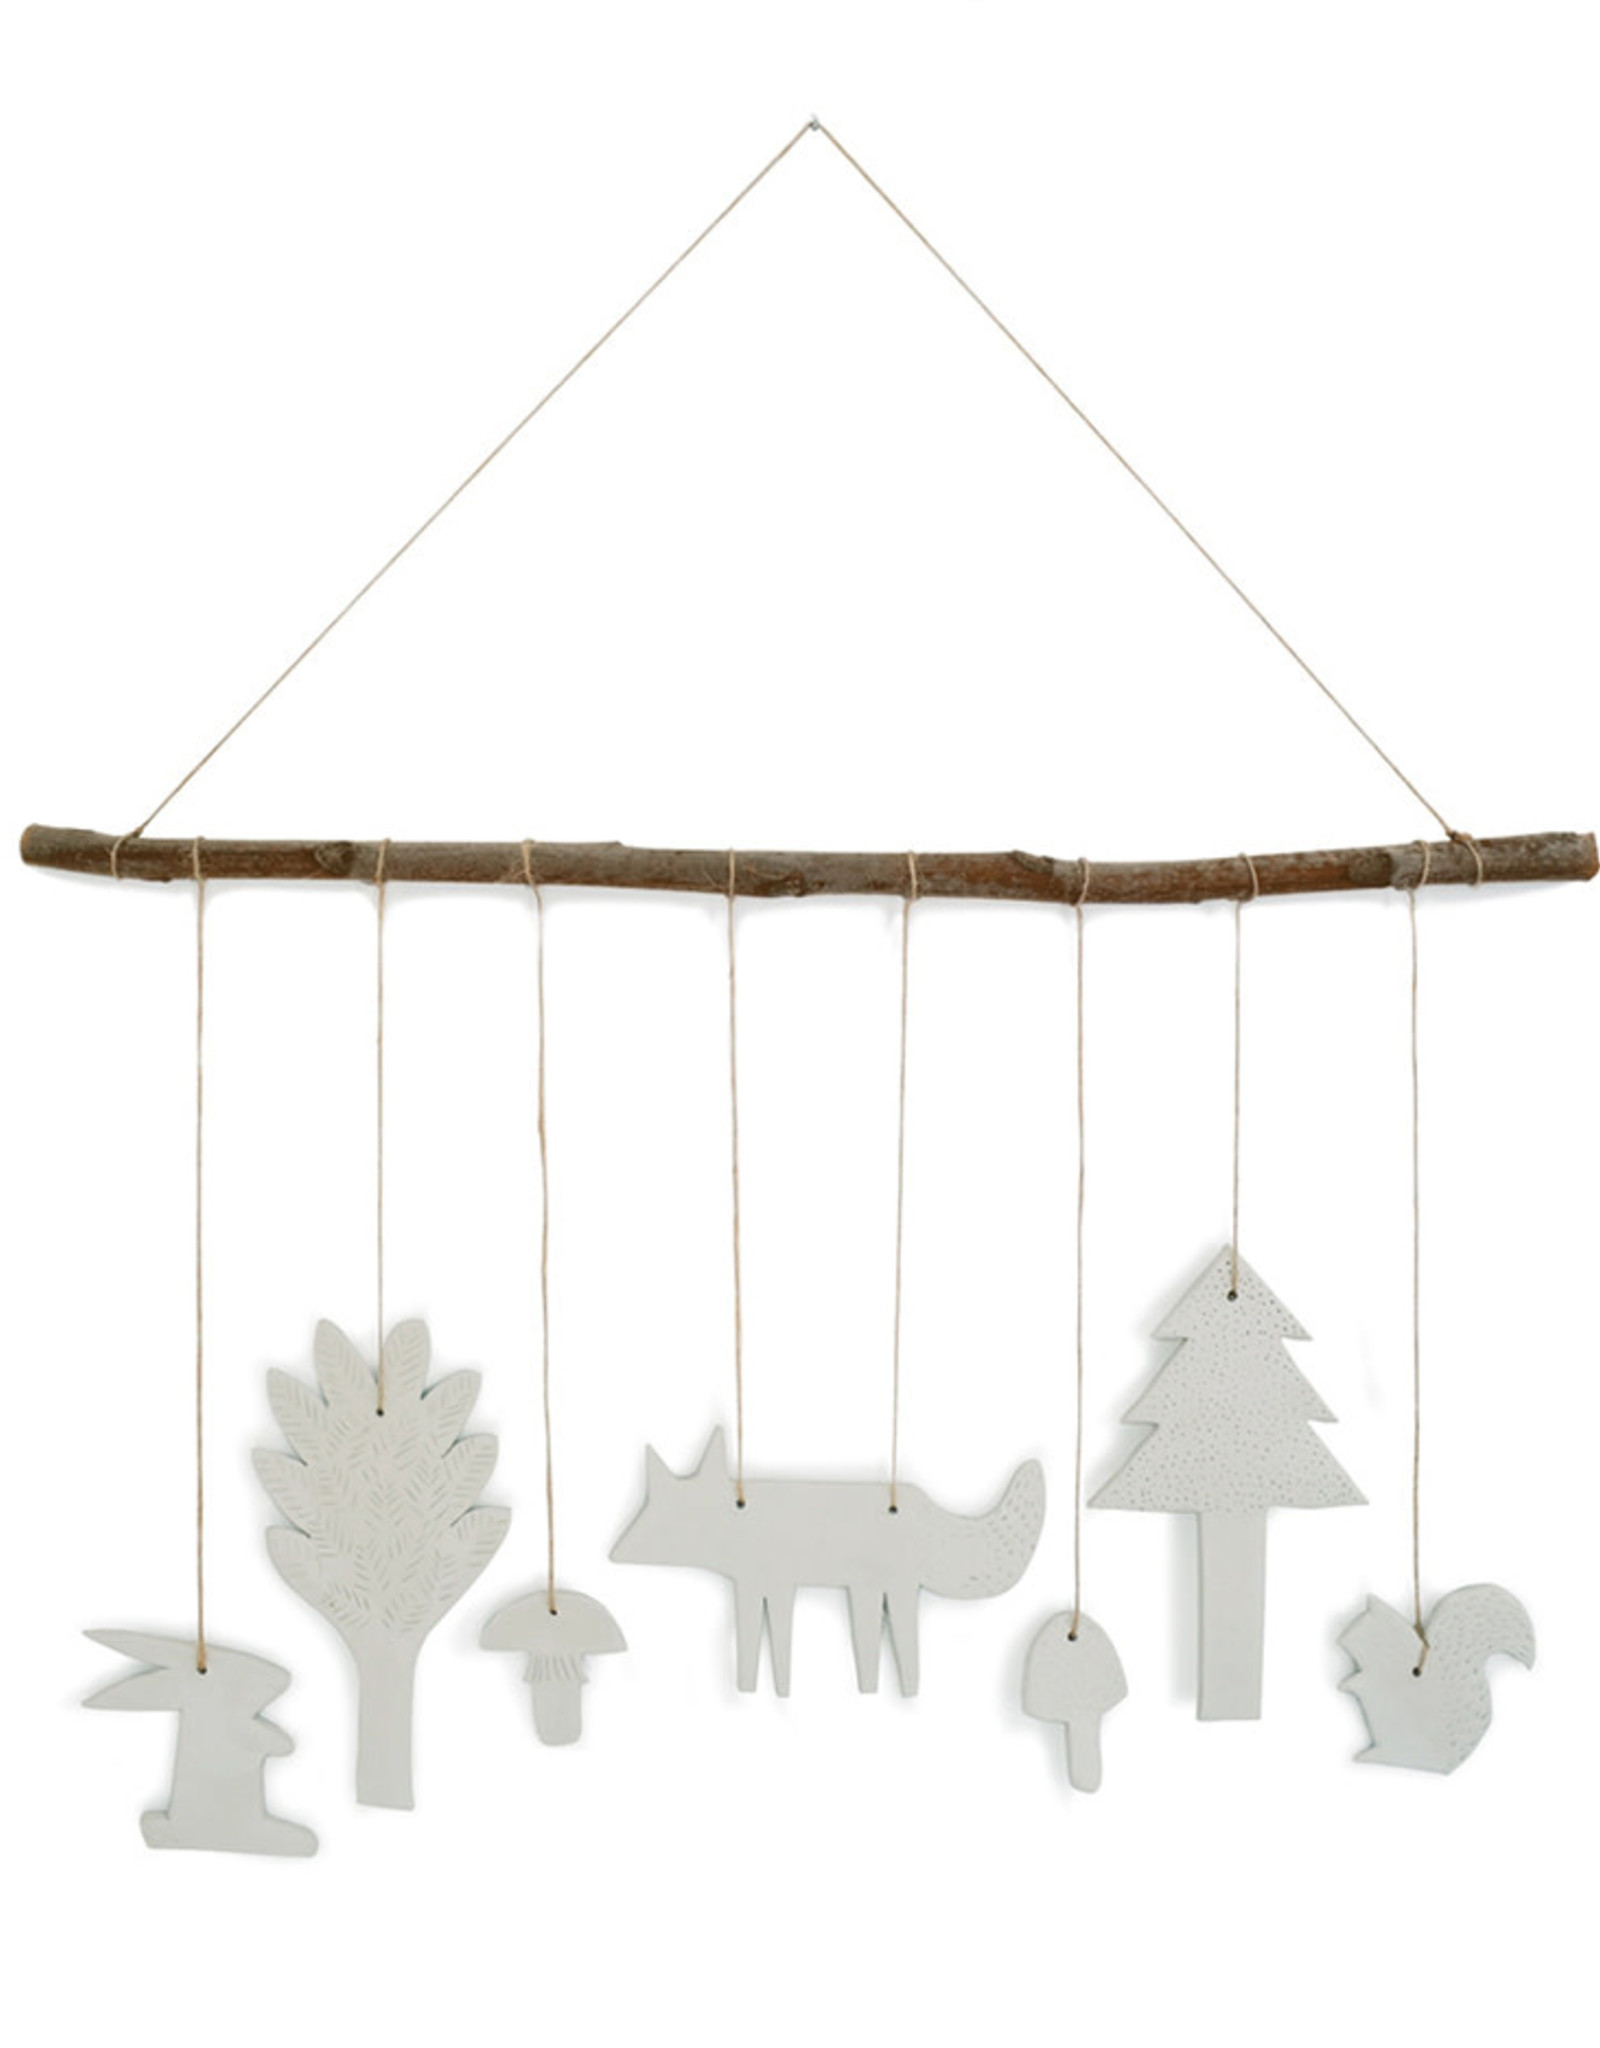 Tresxics Clay Forest Mobile - White